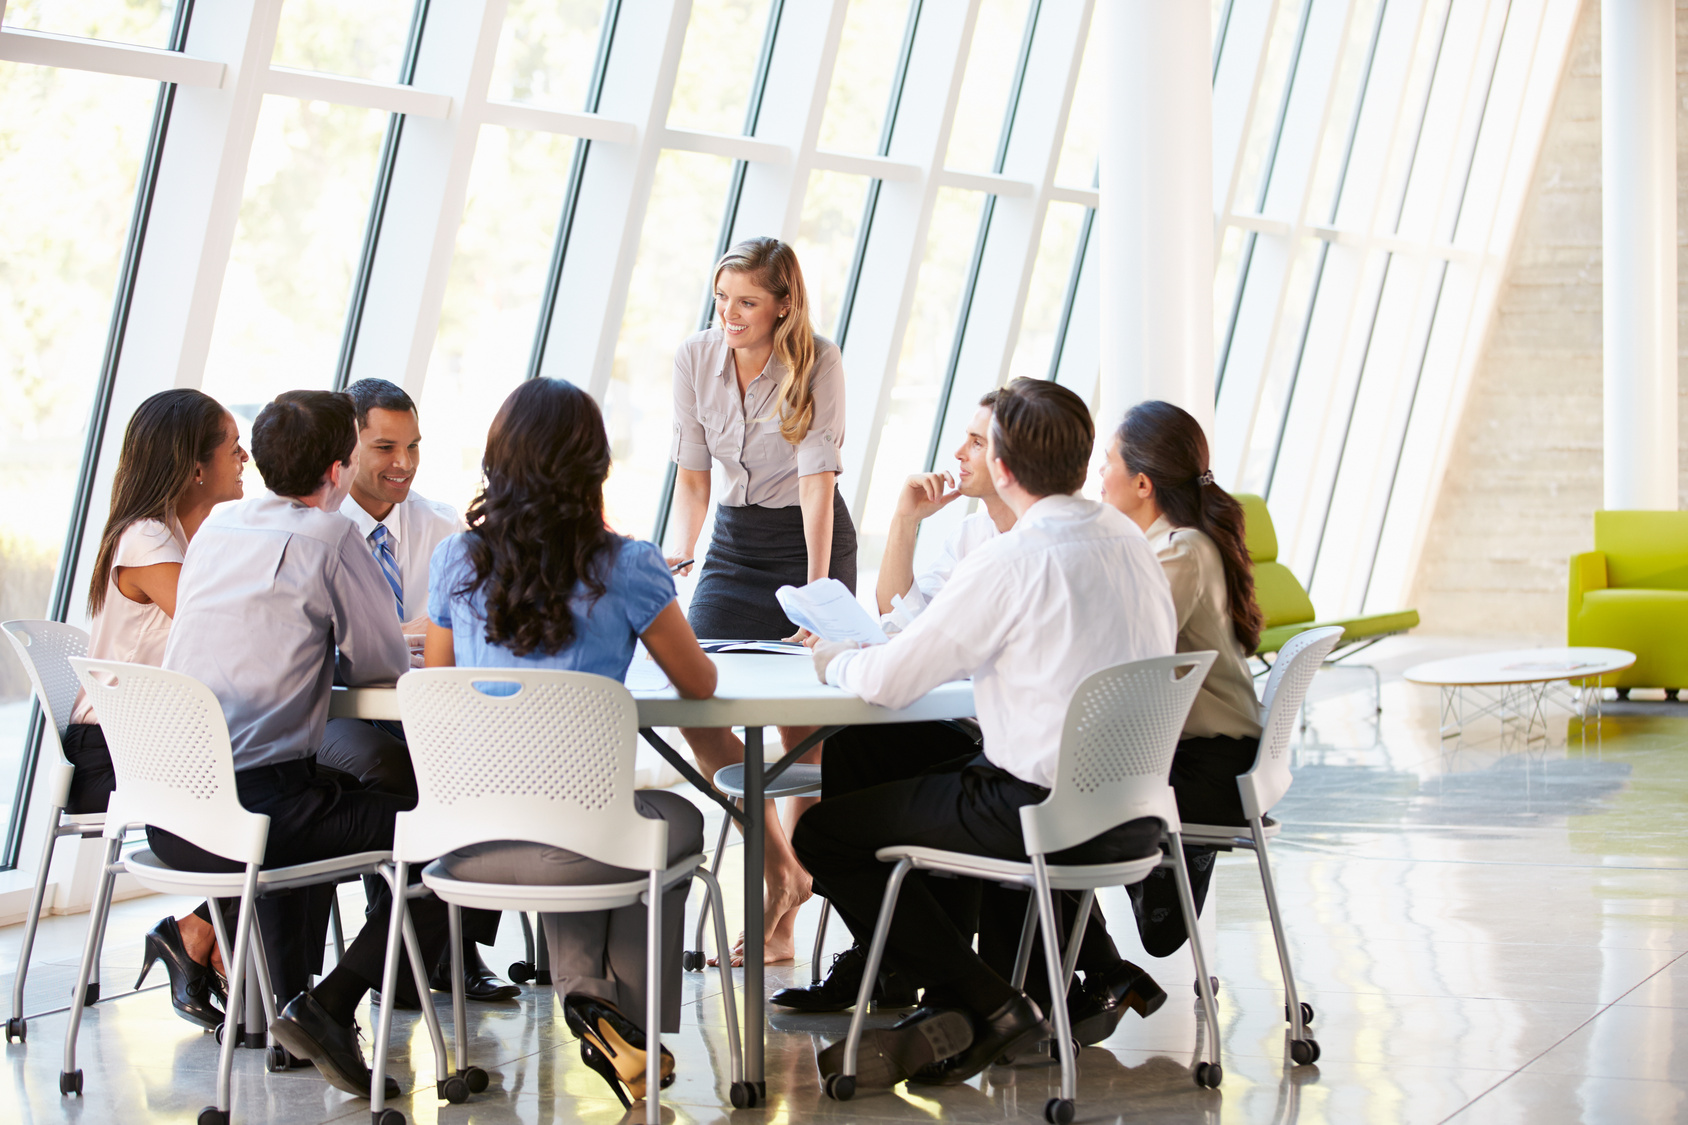 Employees hold a meeting, showing why English is important for business